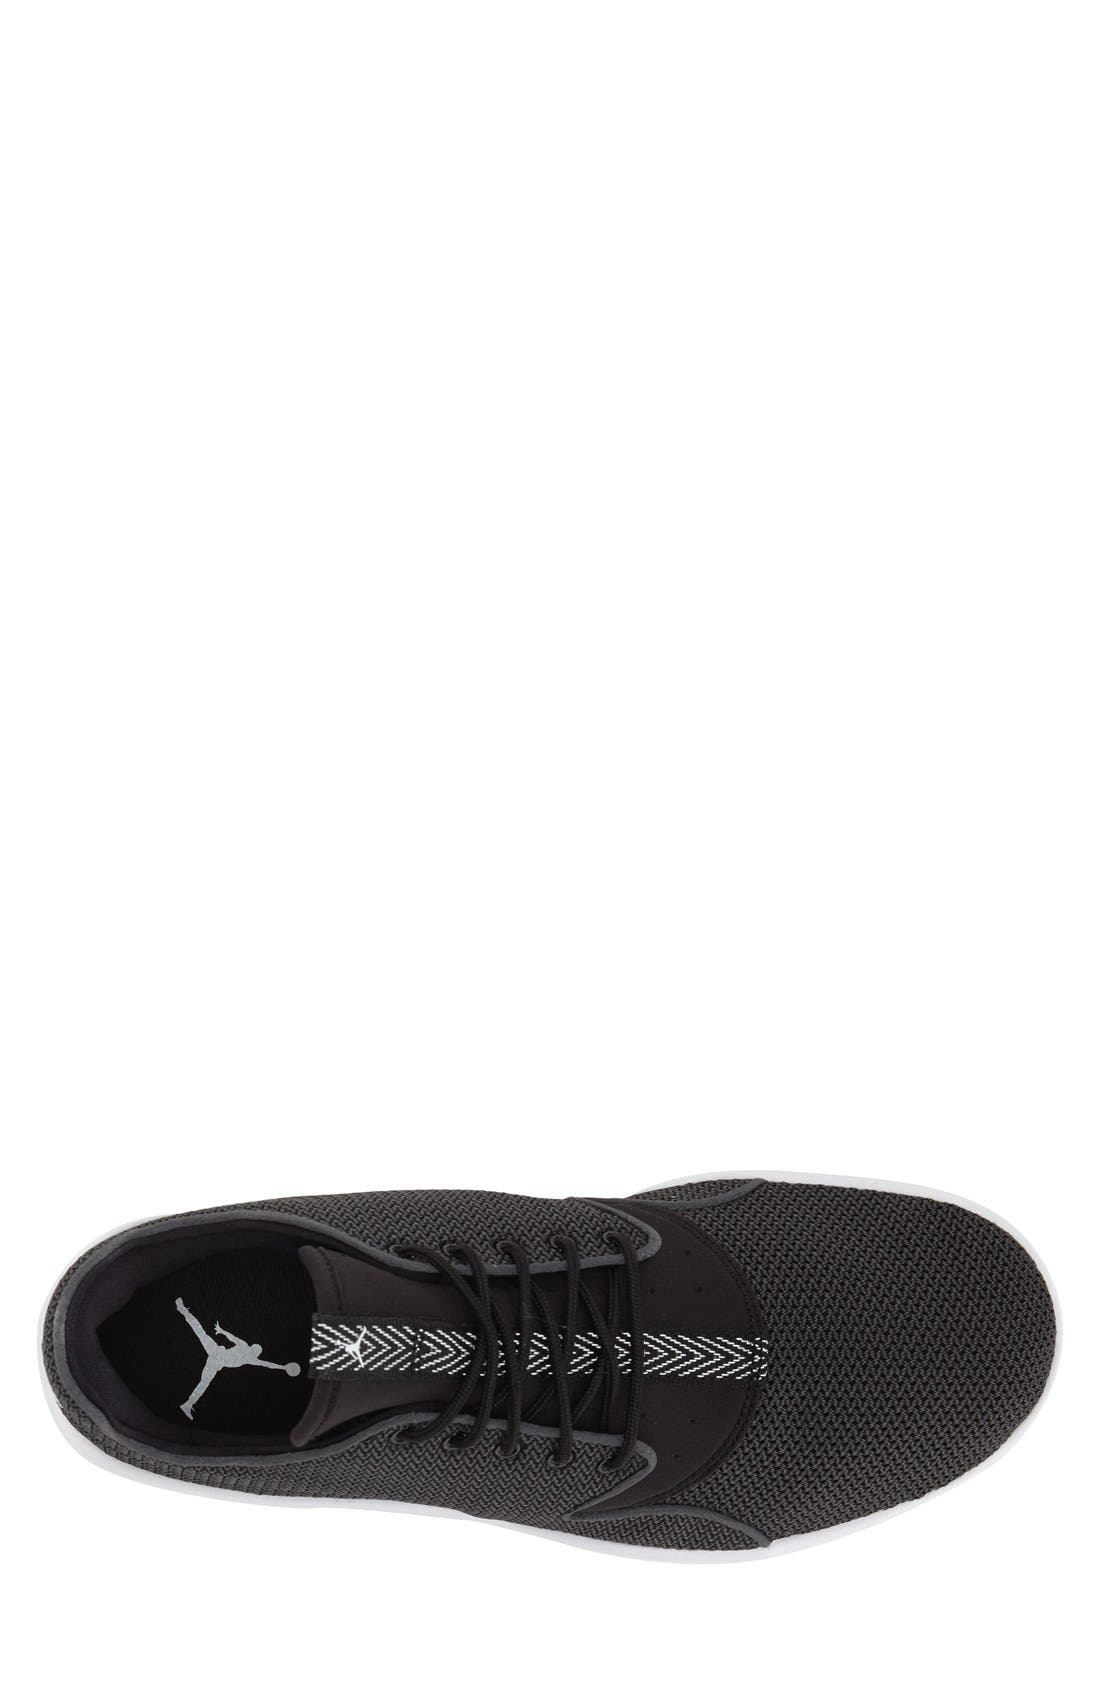 Alternate Image 3  - Nike 'Jordan Eclipse' Sneaker (Men)